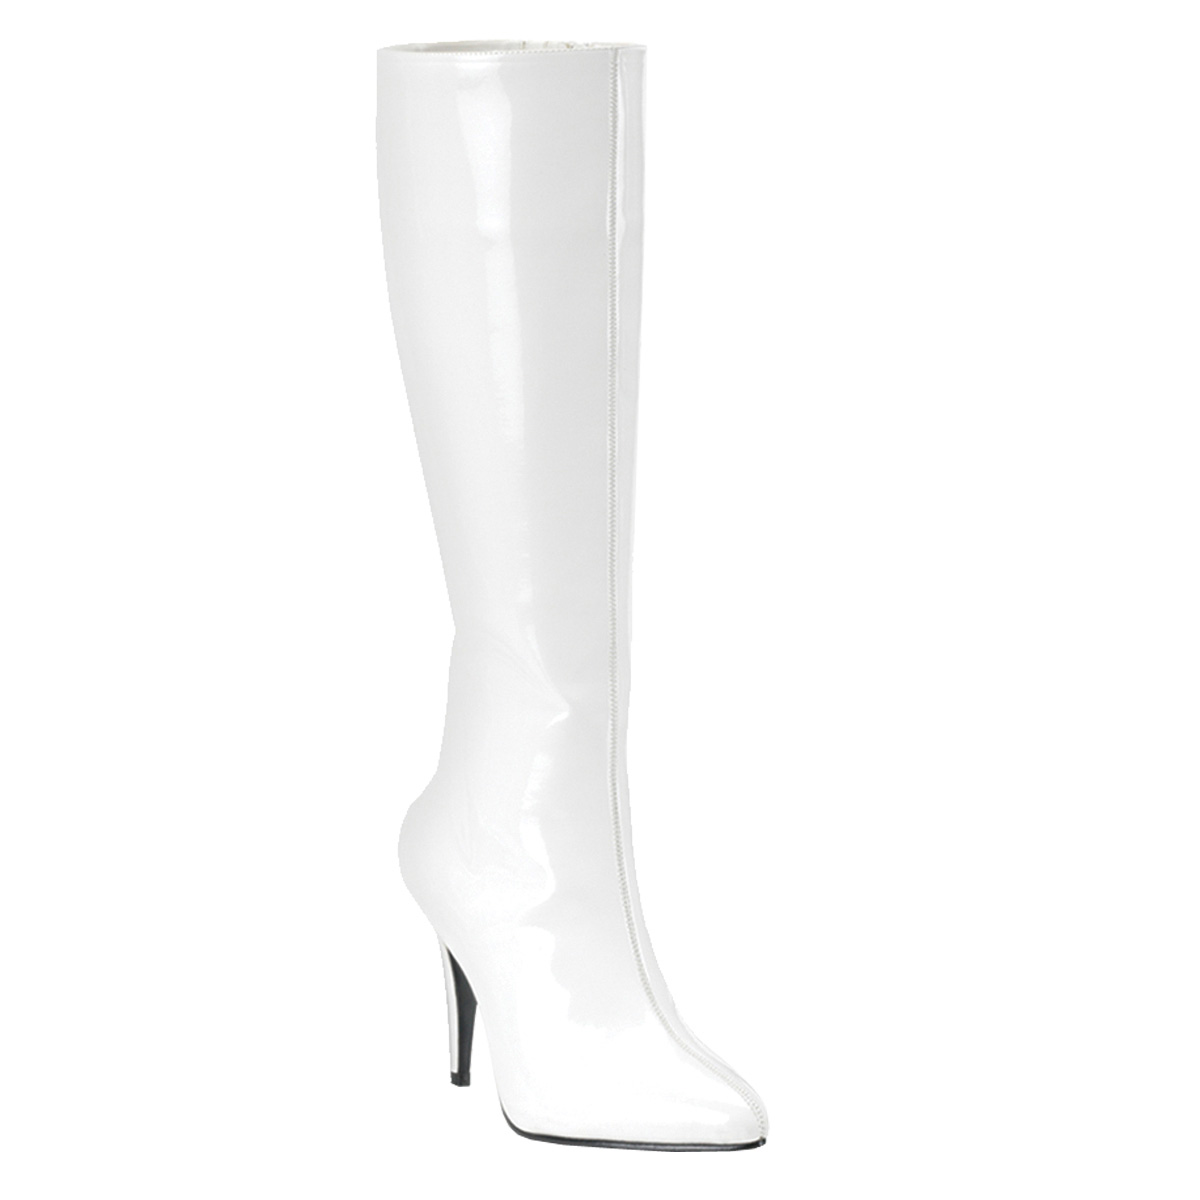 Funtasma by Pleaser Women's Lust-2000 Boot - White Stretch Patent at Sears.com